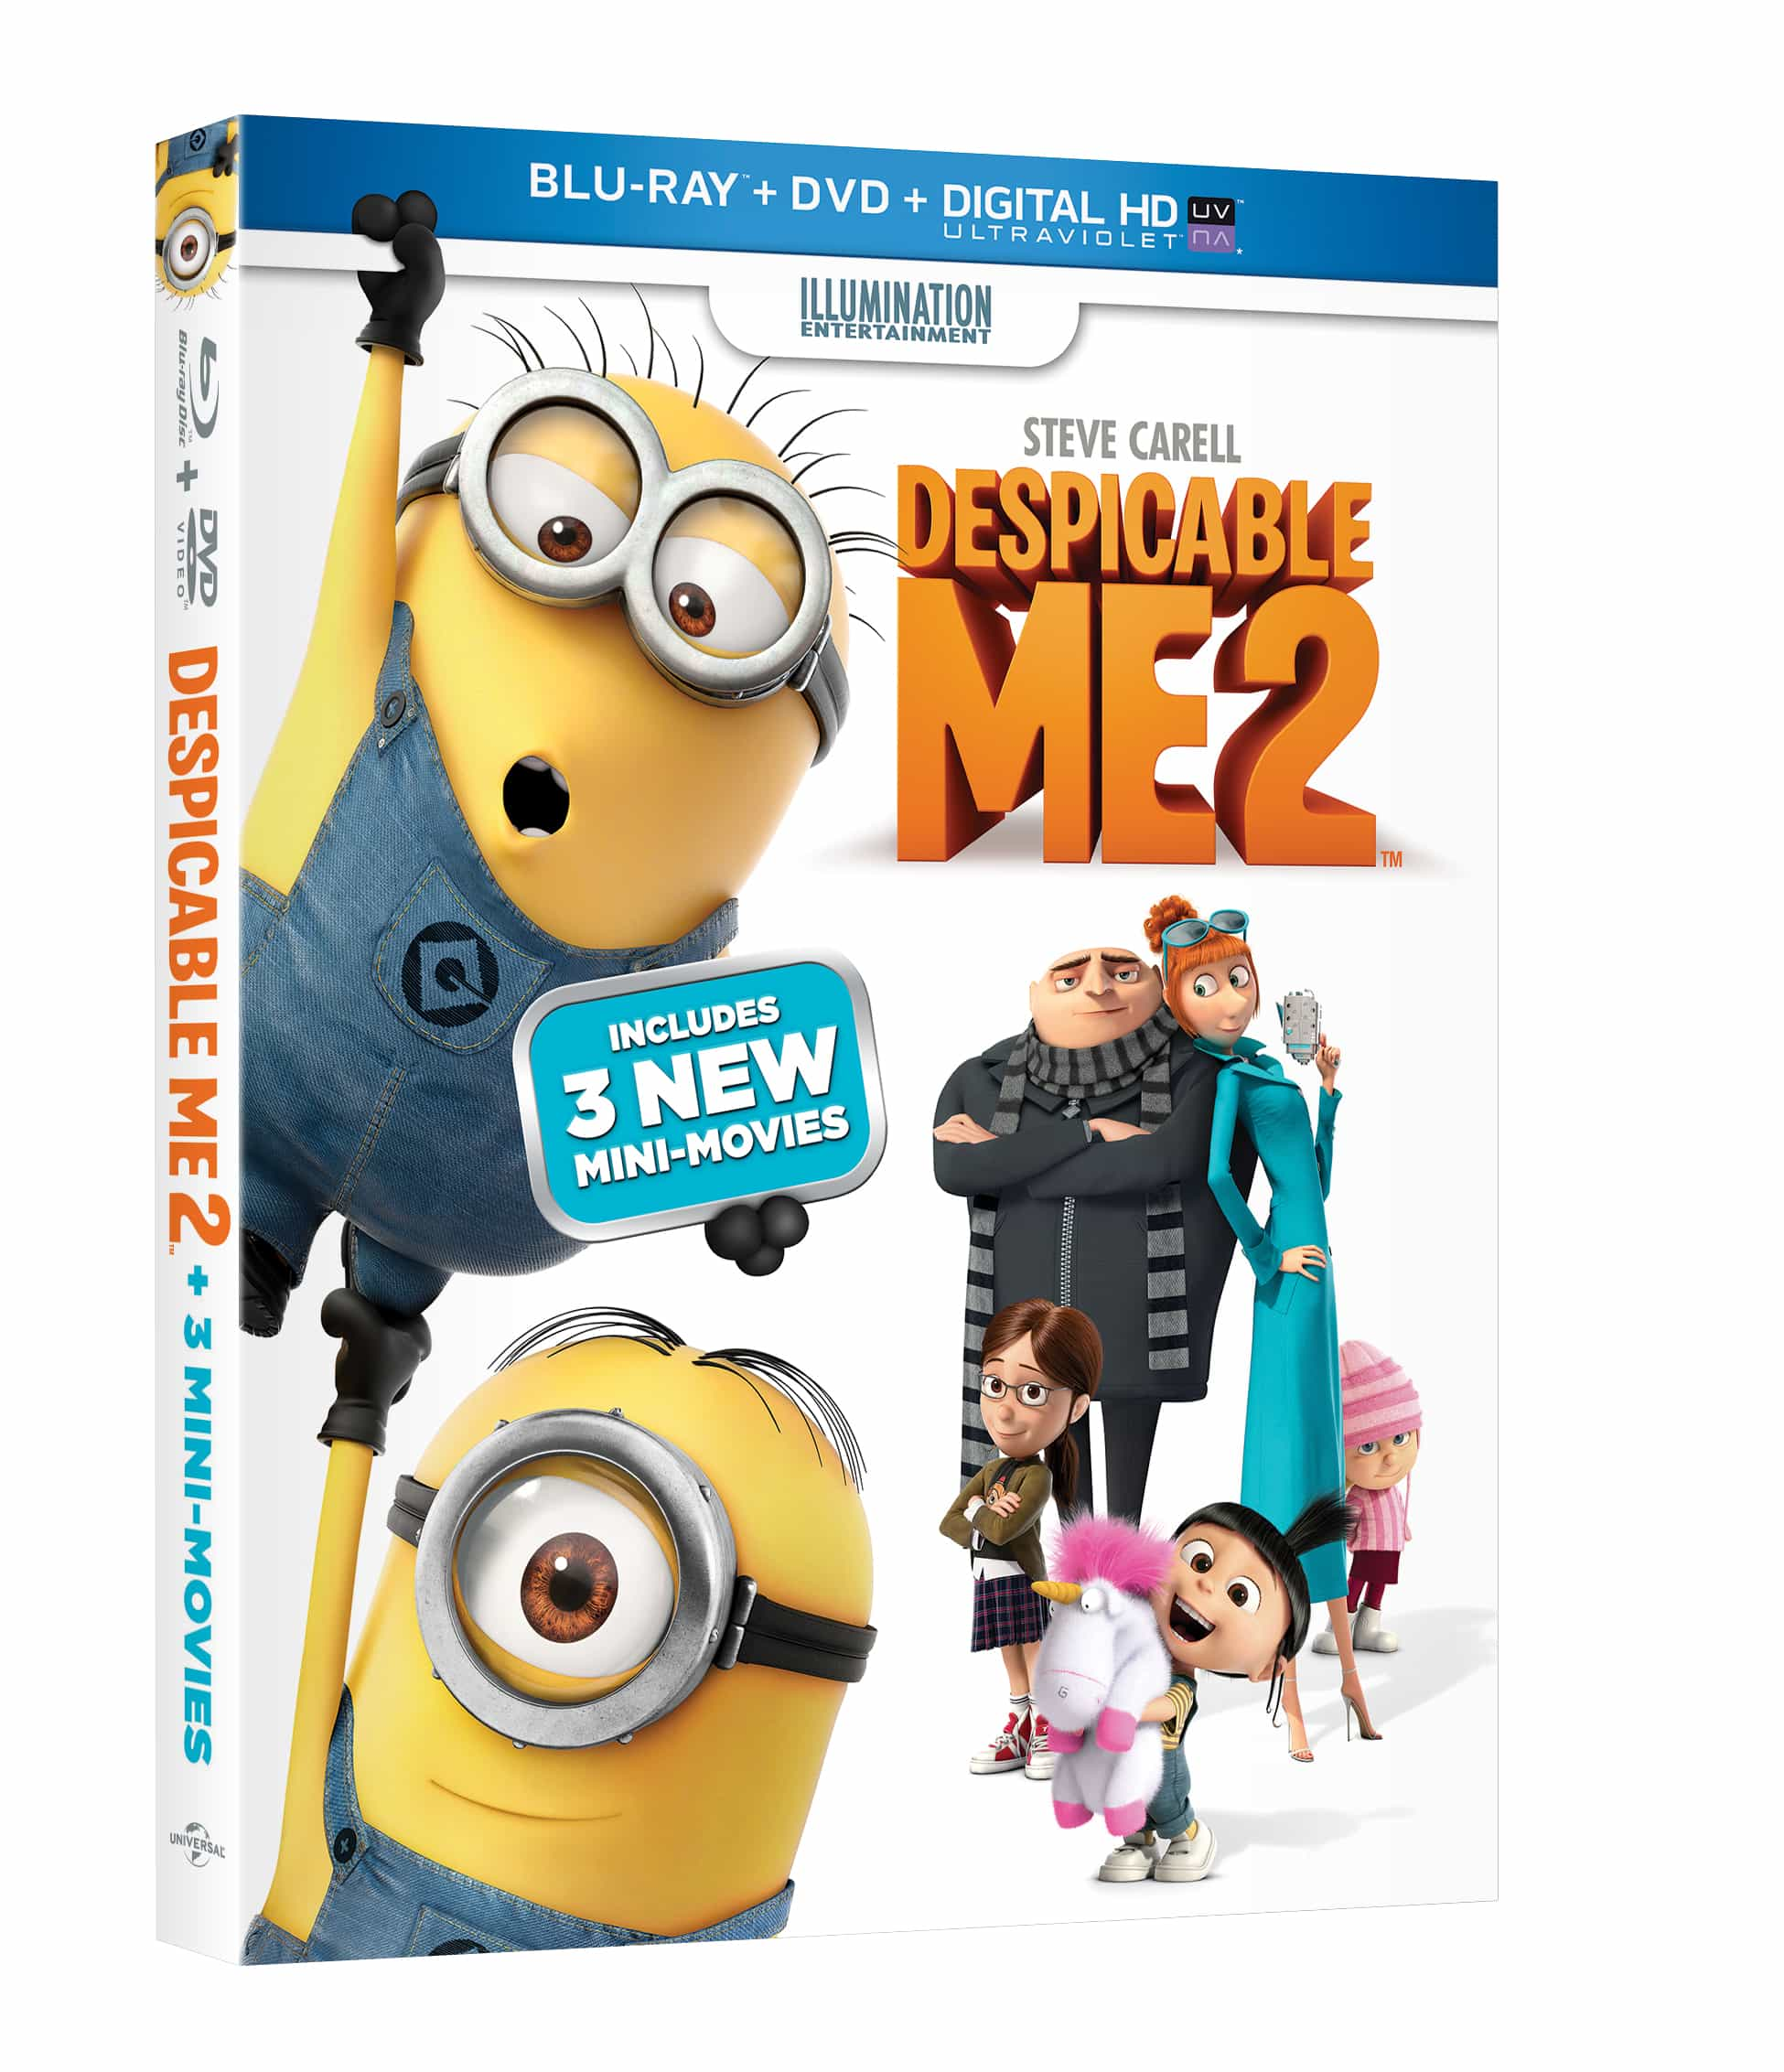 Have you seen Despicable Me 2 yet?